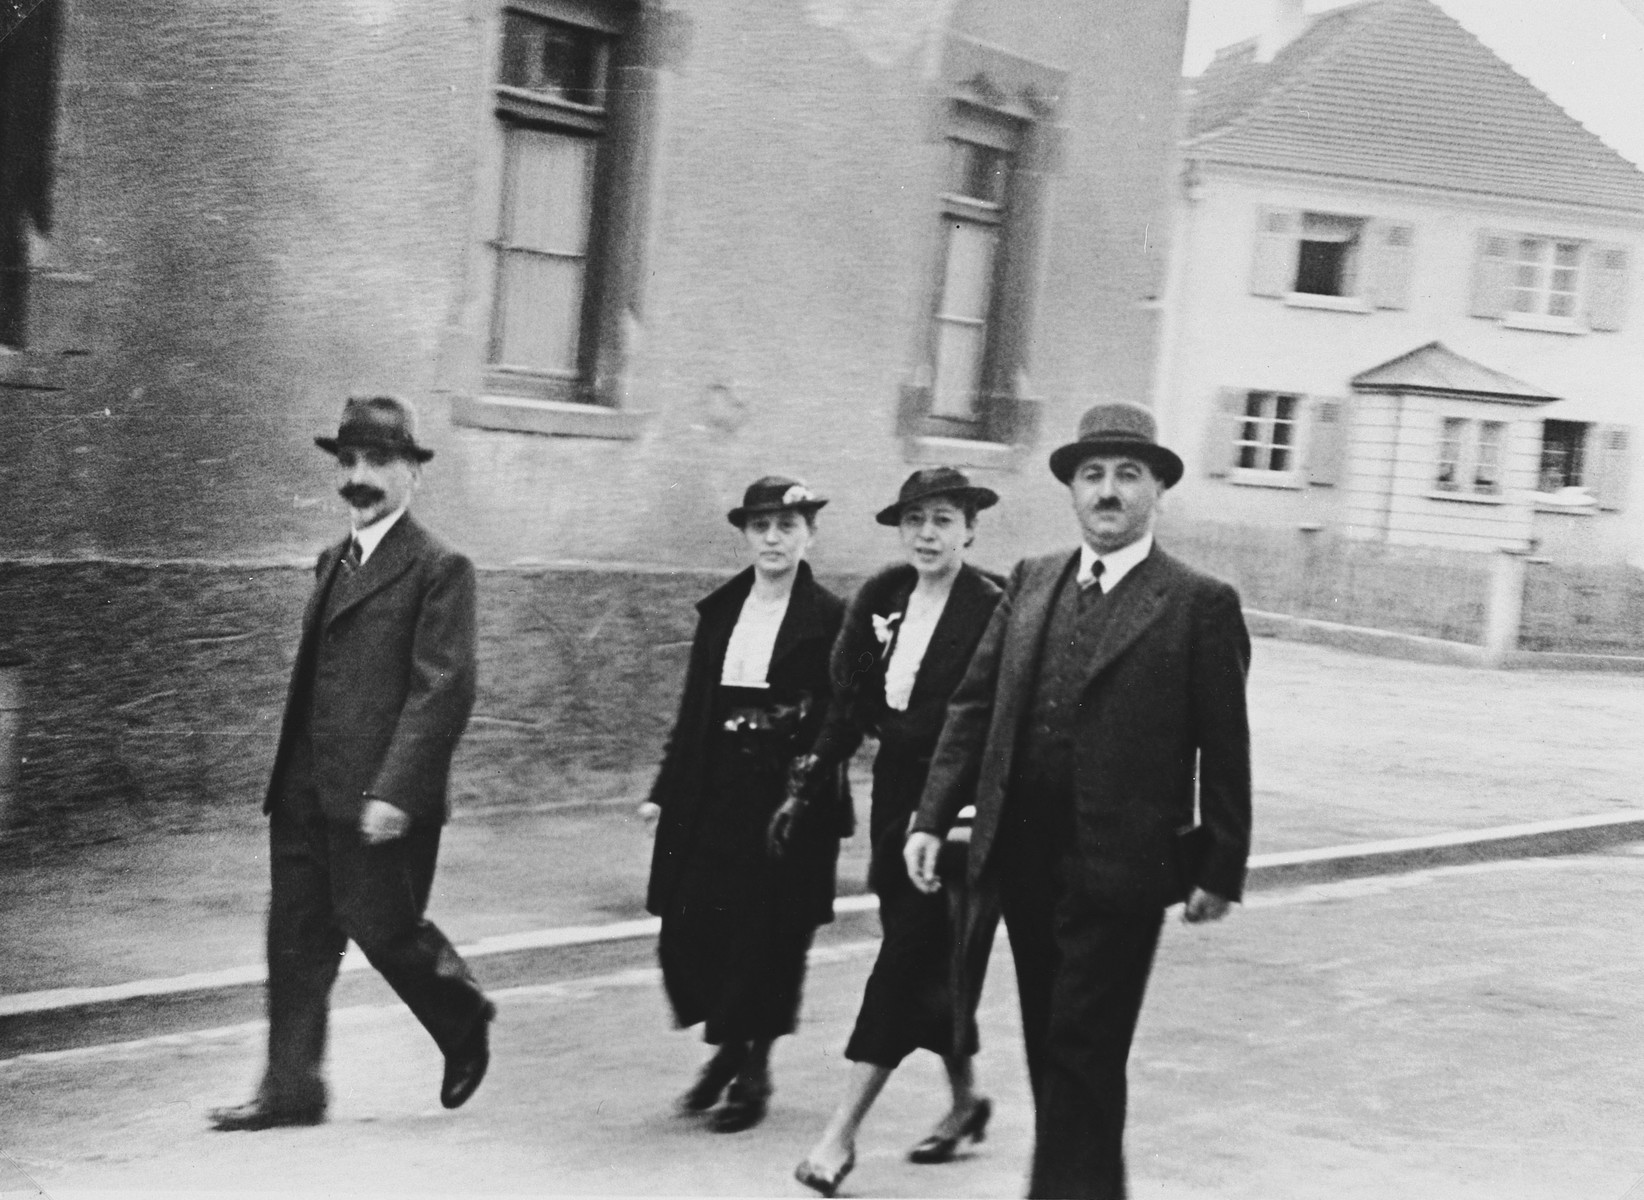 Two Jewish couples walk down Muggensturmstrasse in Breisach, Germany on their way to the synagogue.  Pictured are Hermann, Fanny, Talie and Julius Bähr.  This is part of series of photographs taken of the Breisach Jewish community 1937.  In October 1940 the entire community was deported to the Gurs internment camp in southern France.